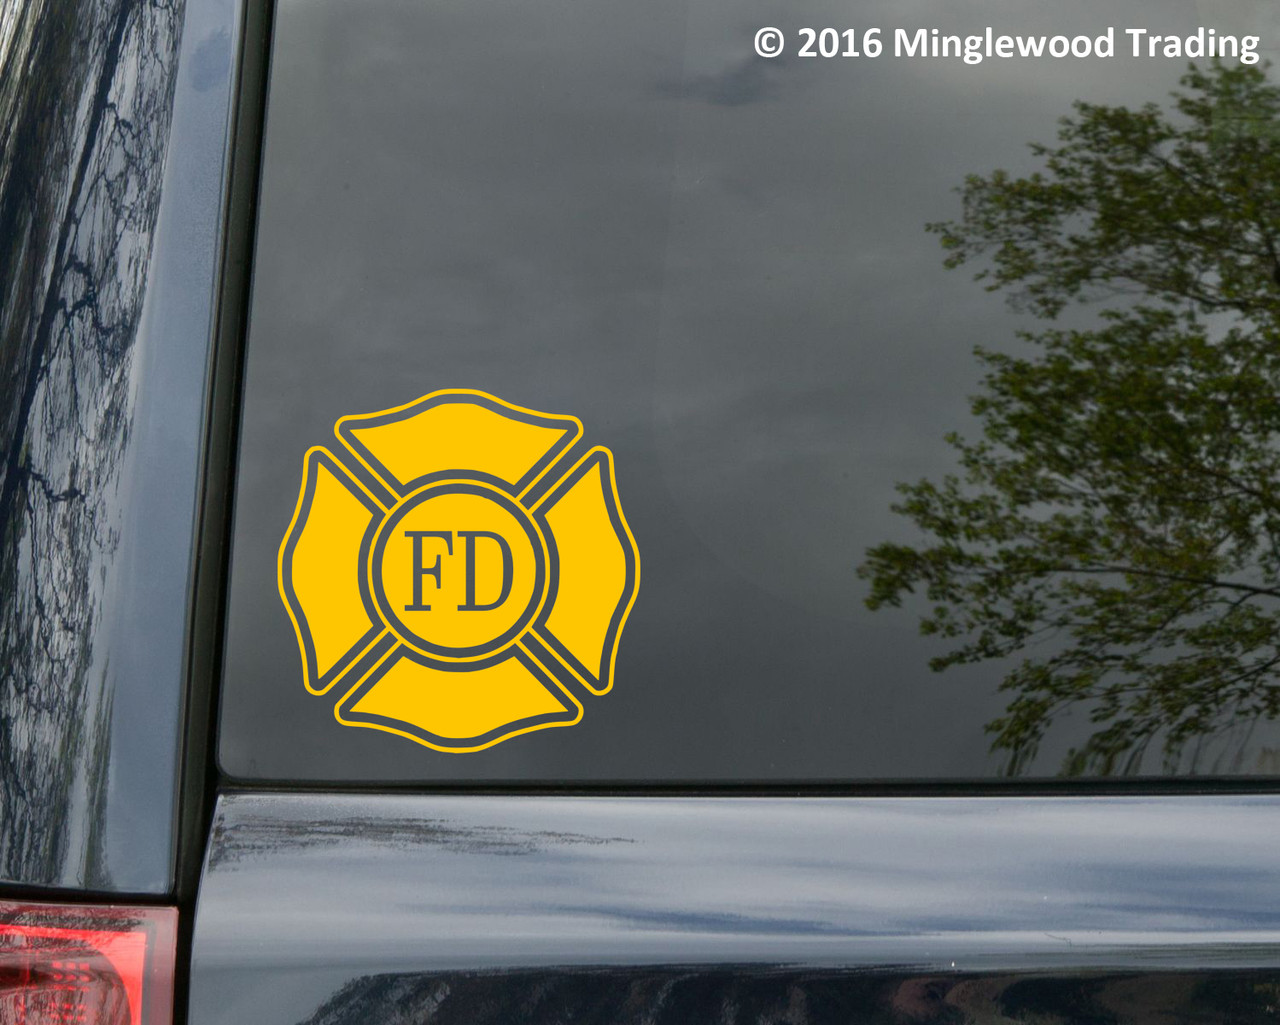 Fire Department Vinyl Decal V2 - Maltese Cross VFD Firefighter - Die Cut Sticker